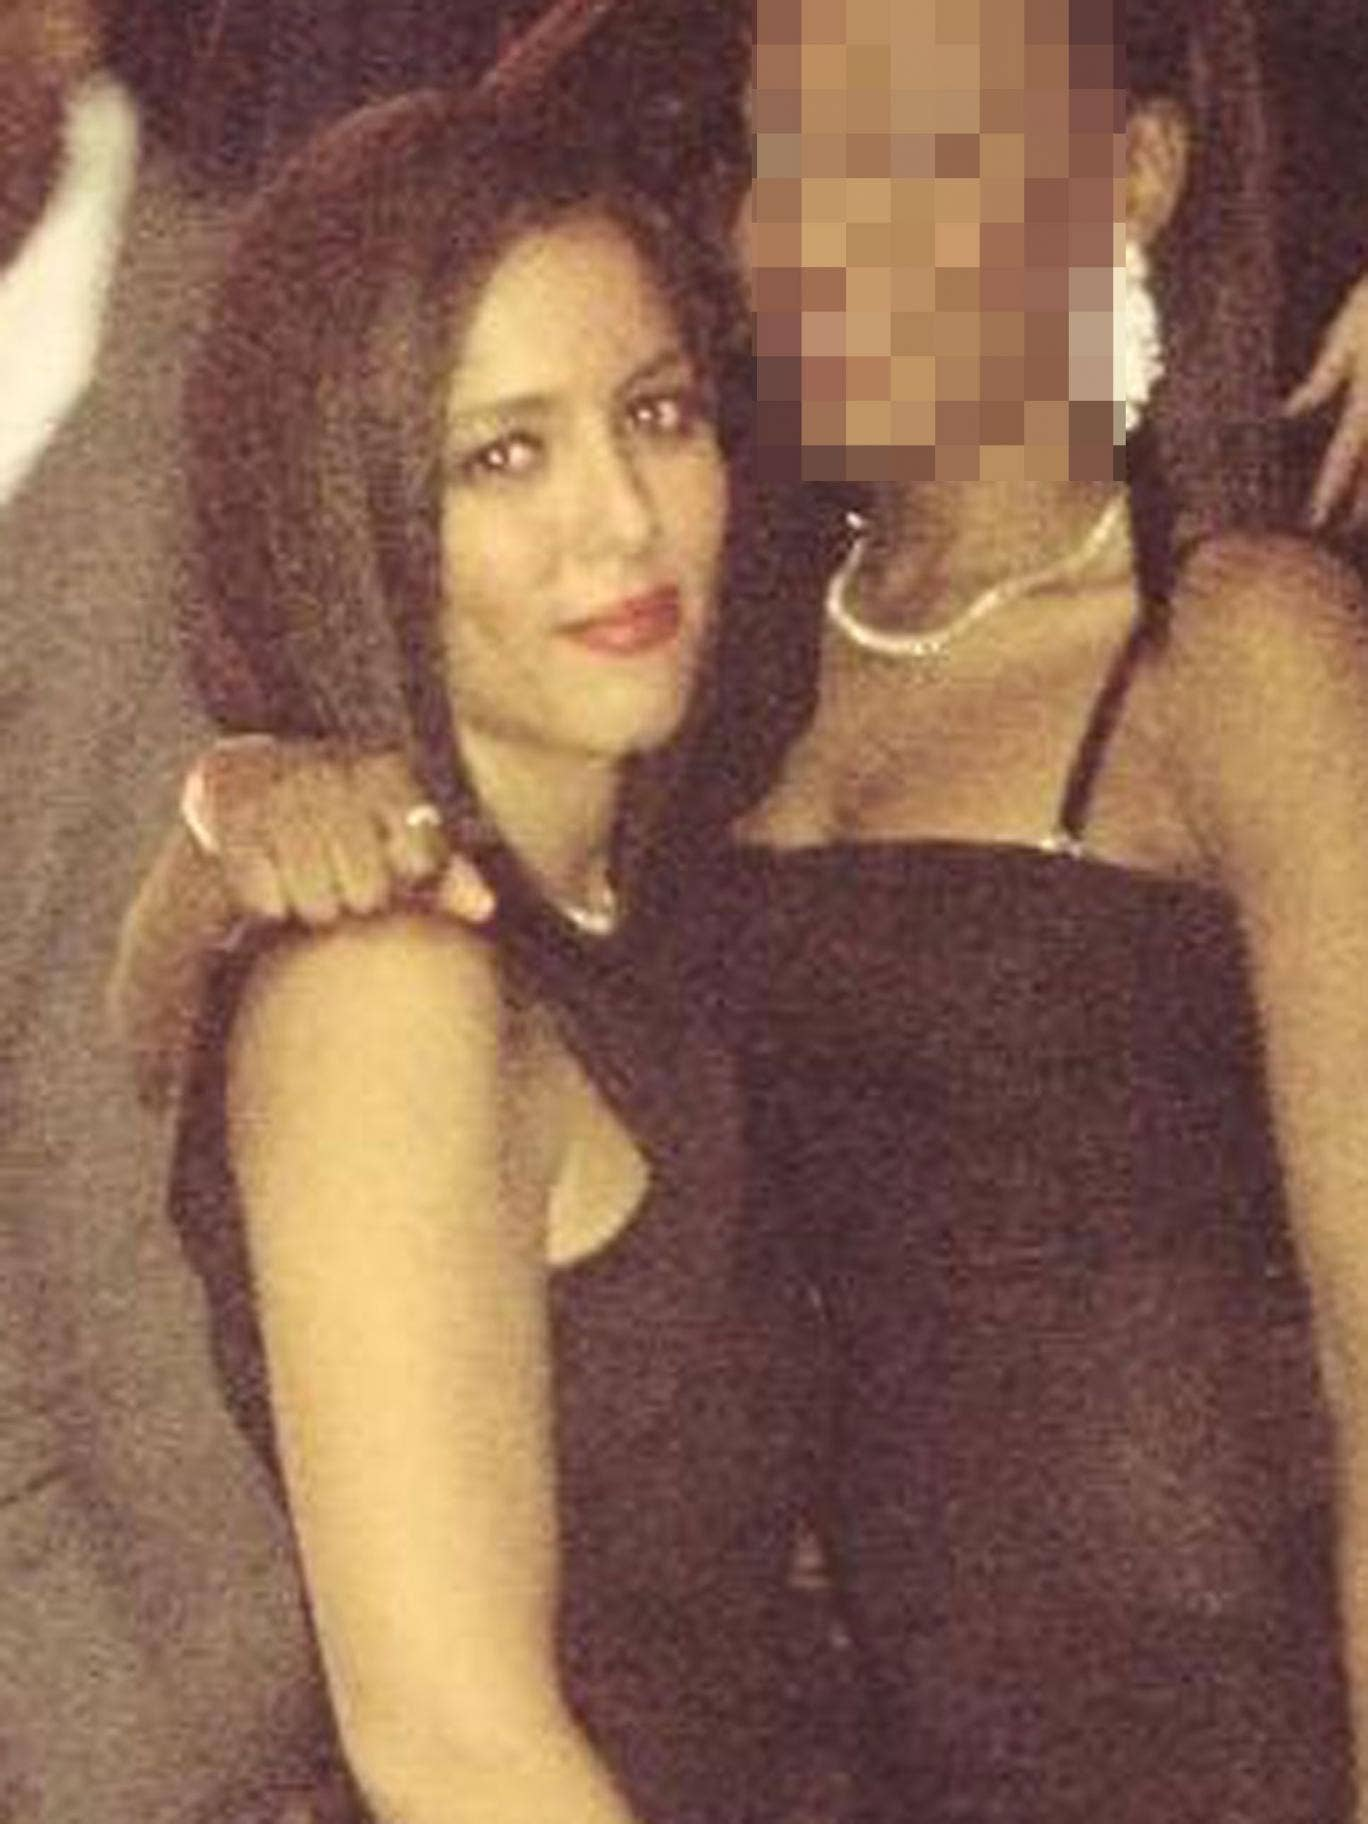 Nawal Msaad, left, was allegedly caught 'smuggling €20,000 (£16,500) in her knickers', and has been charged with trying to help fund terrorism in Syria